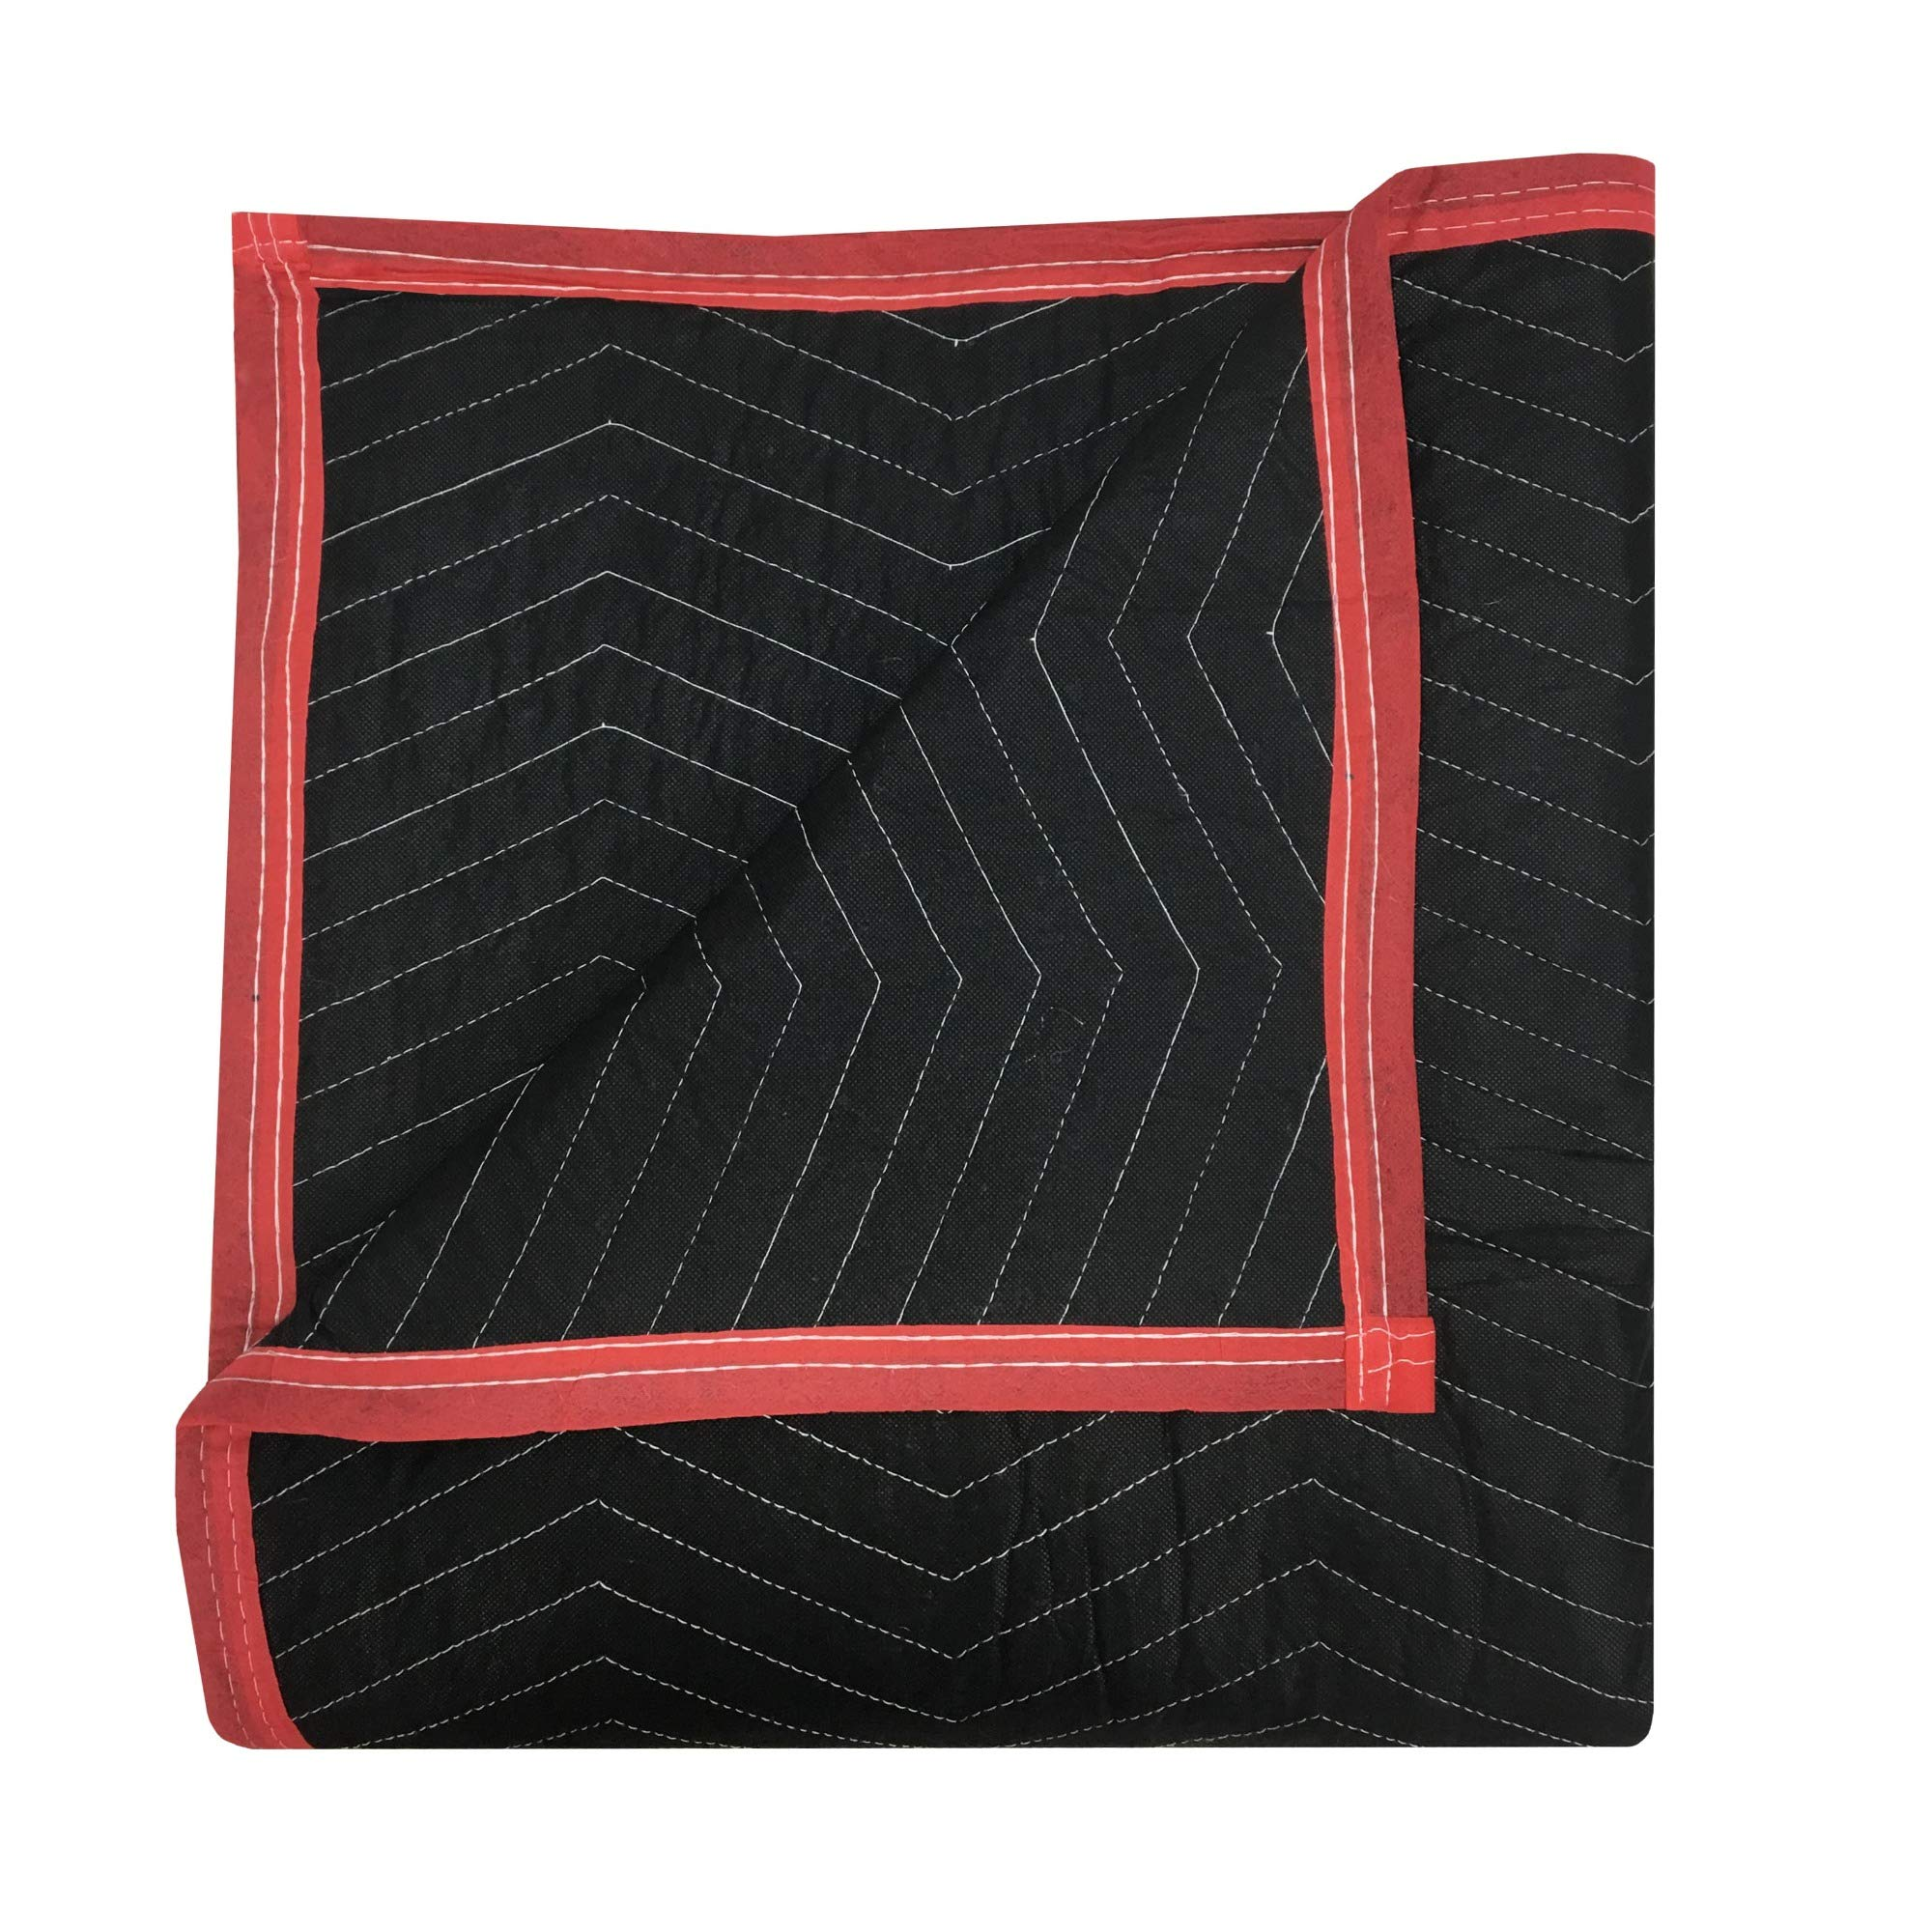 6 Pack of Deluxe Moving Blankets - 5.42lbs/Each - Protective Shipping by Uboxes (Image #3)